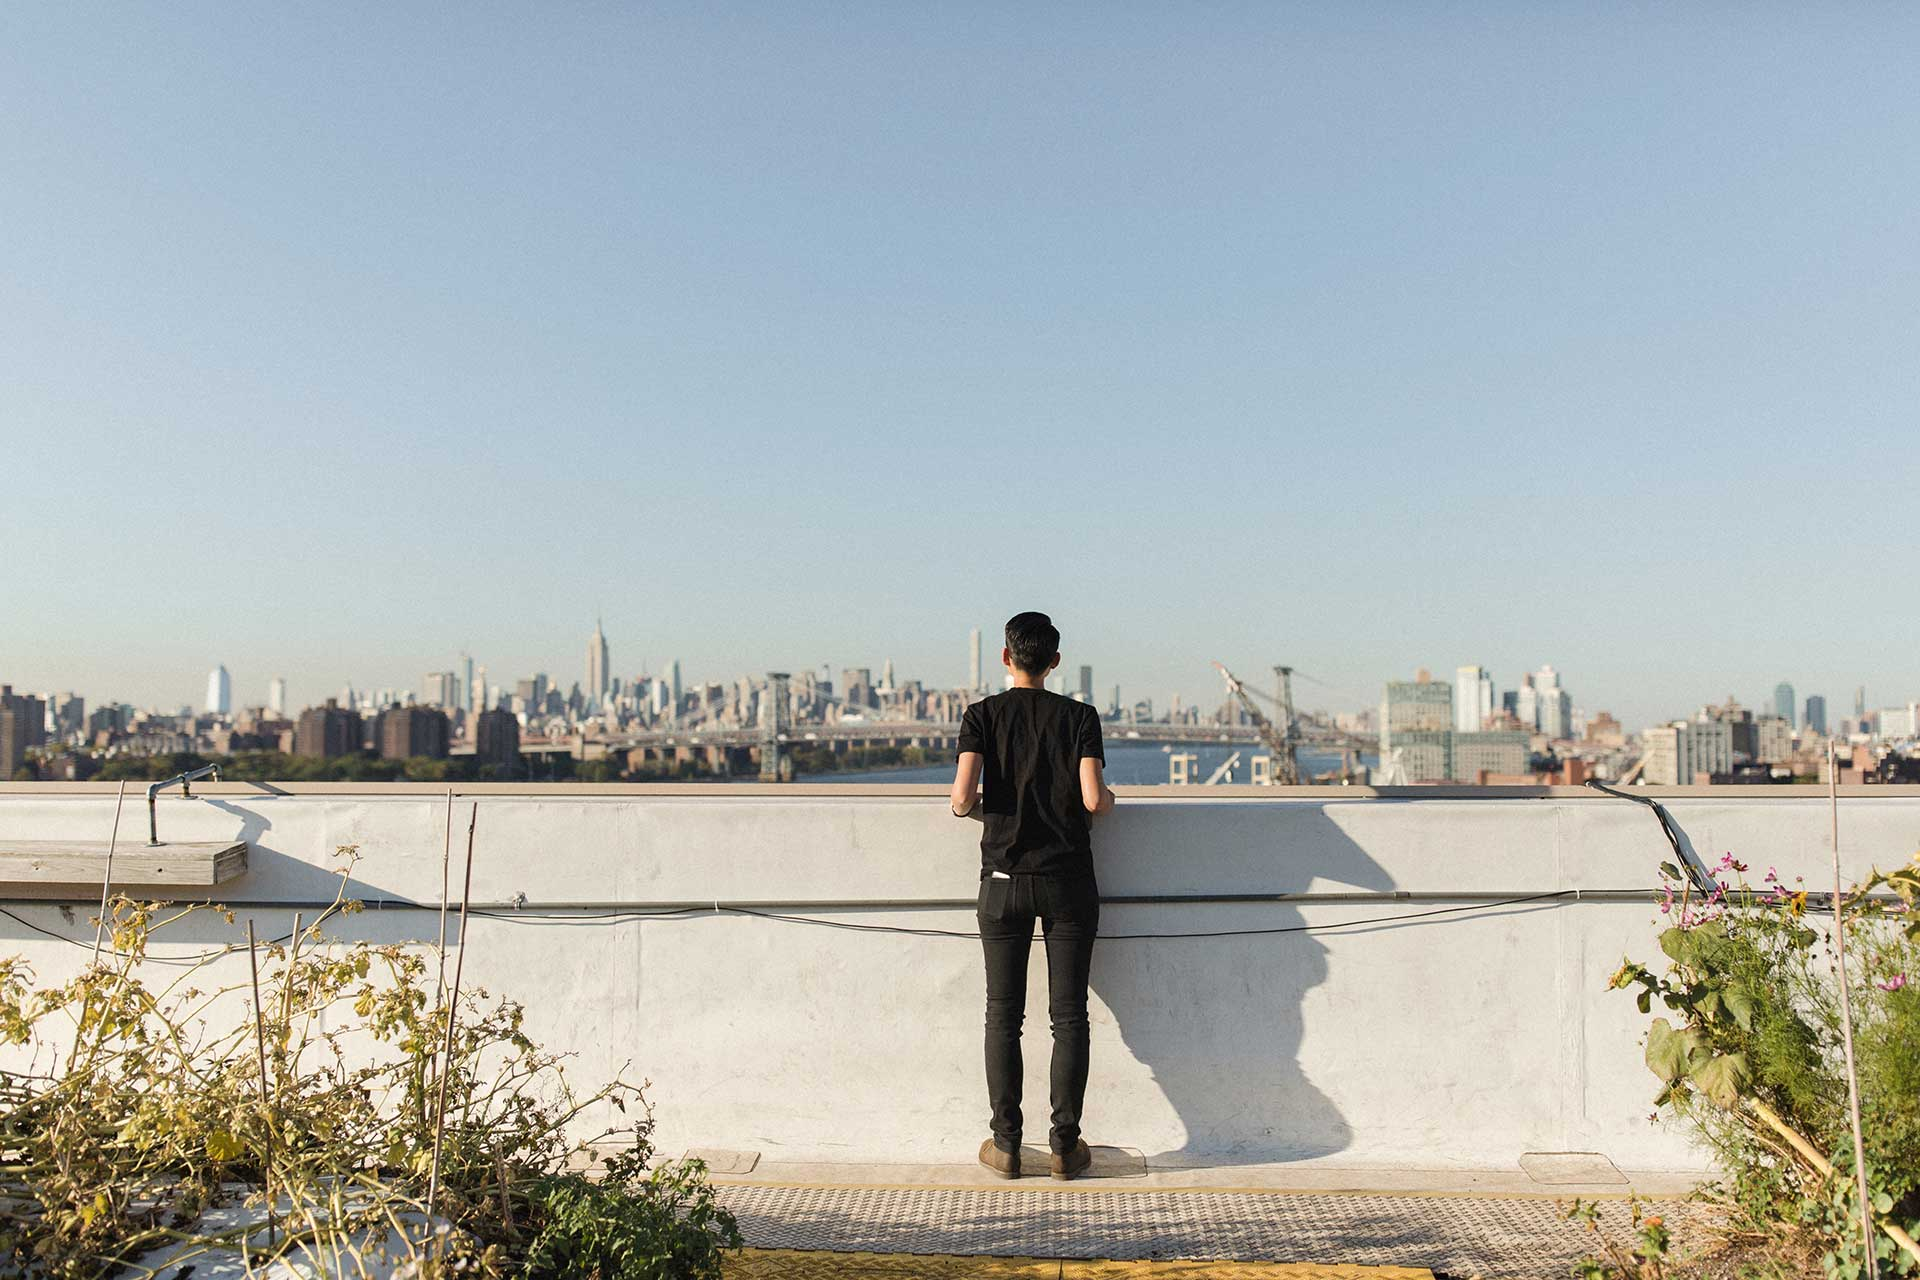 A man stands on the rooftop looking out at the city skyline.